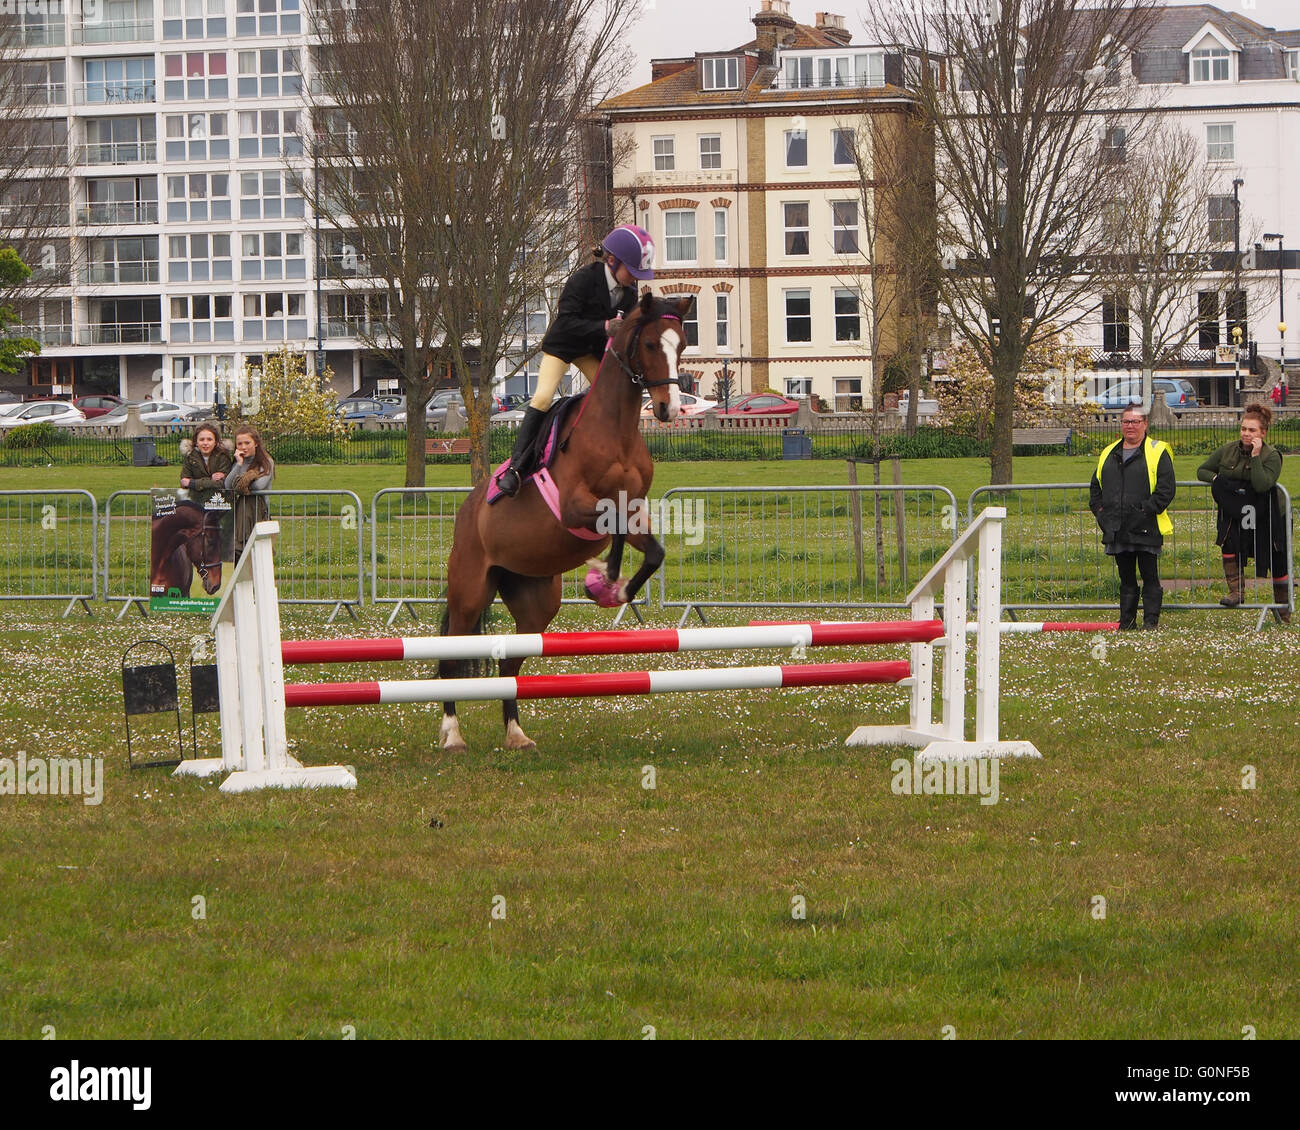 A young girl jumps a hurdle on her horse at a showjumping event - Stock Image